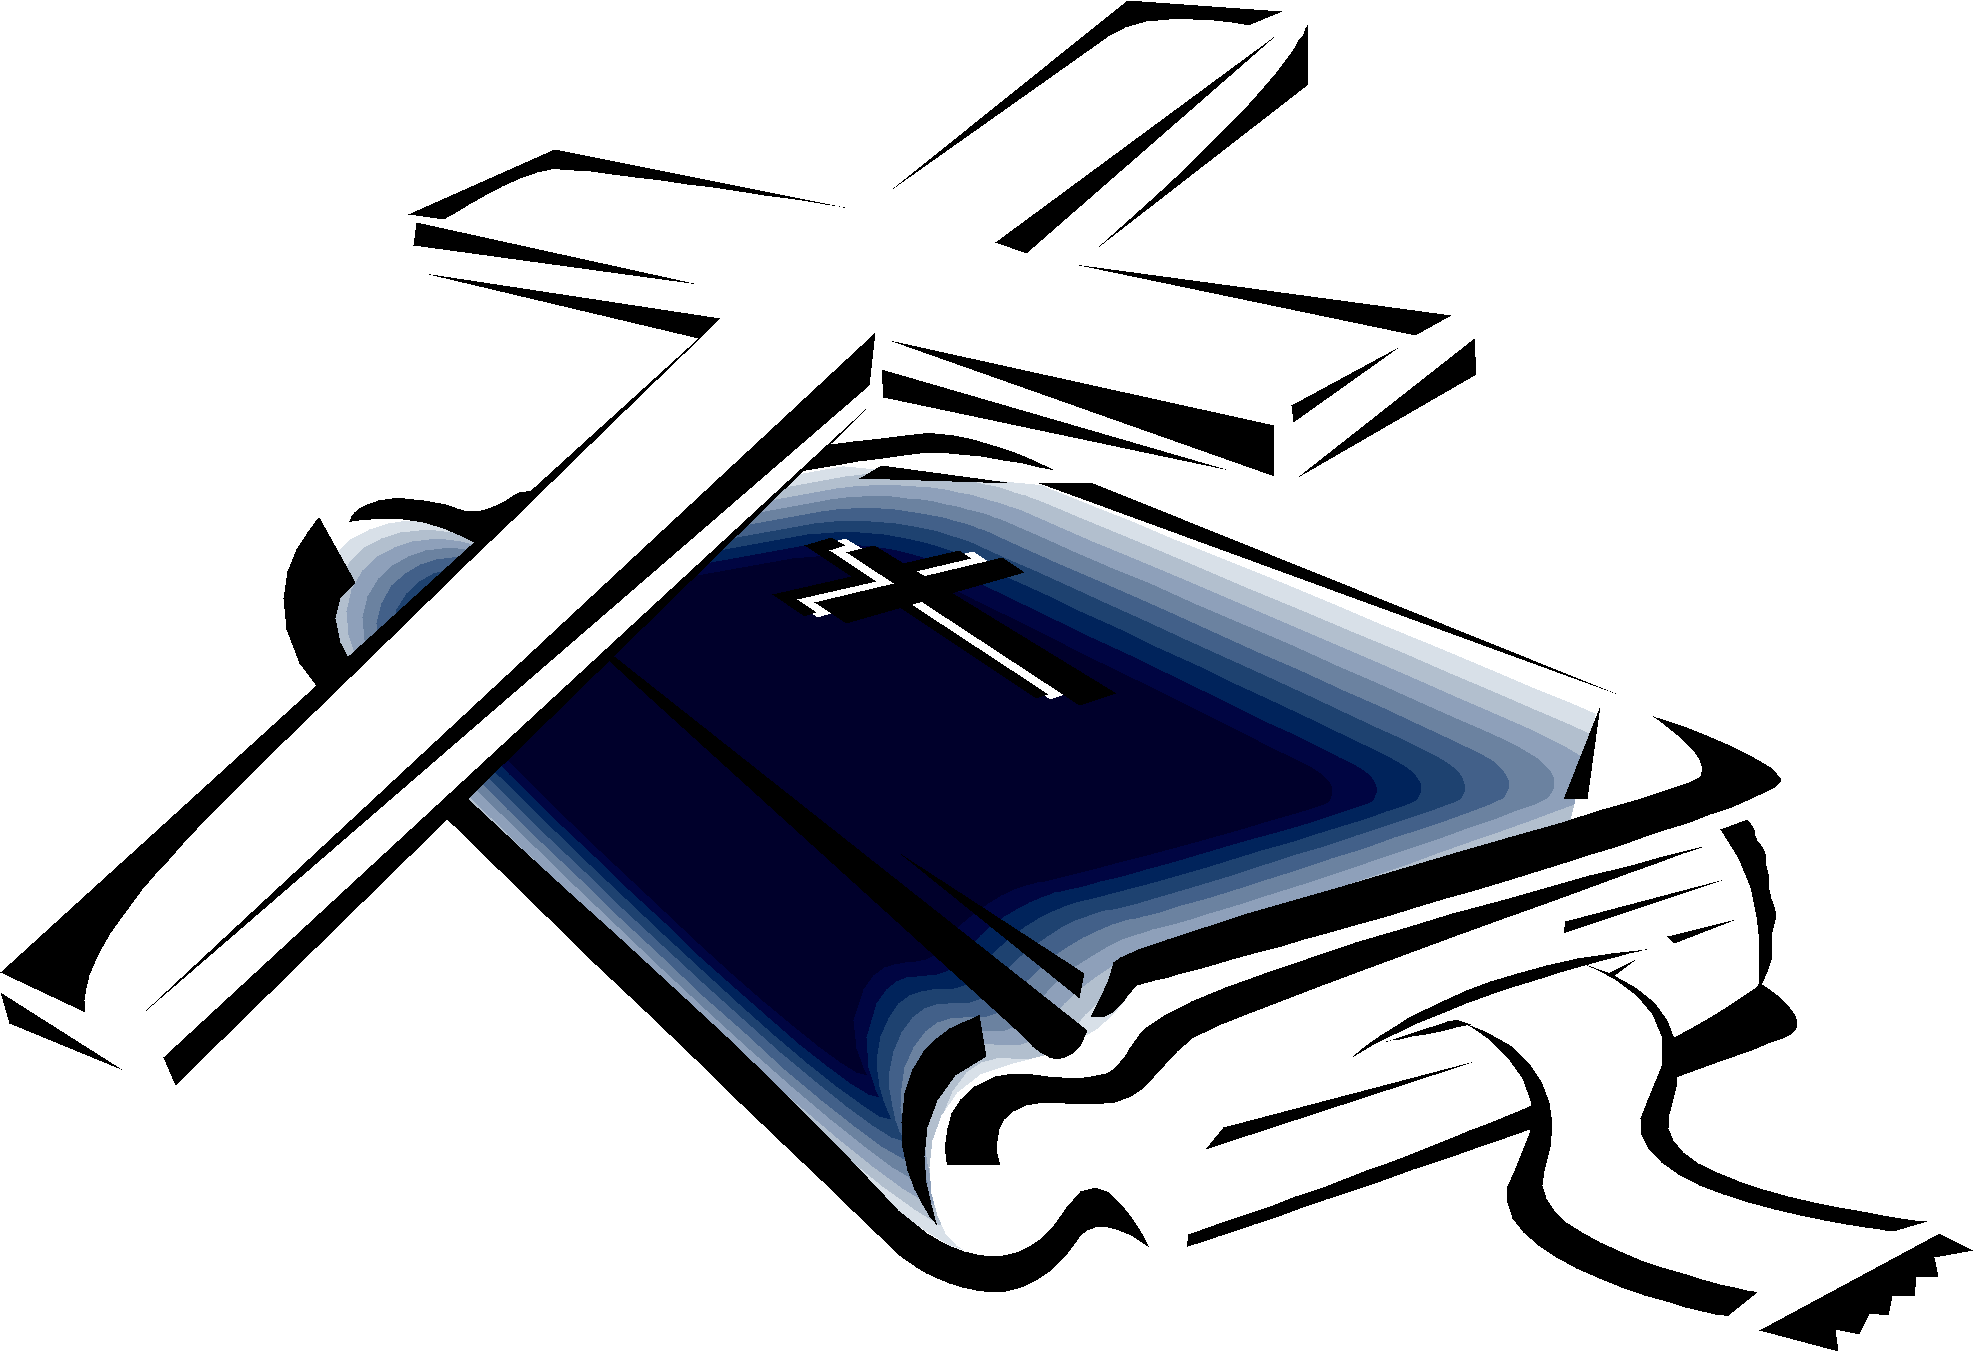 Bible Clip art Openclipart Religious text Illustration.